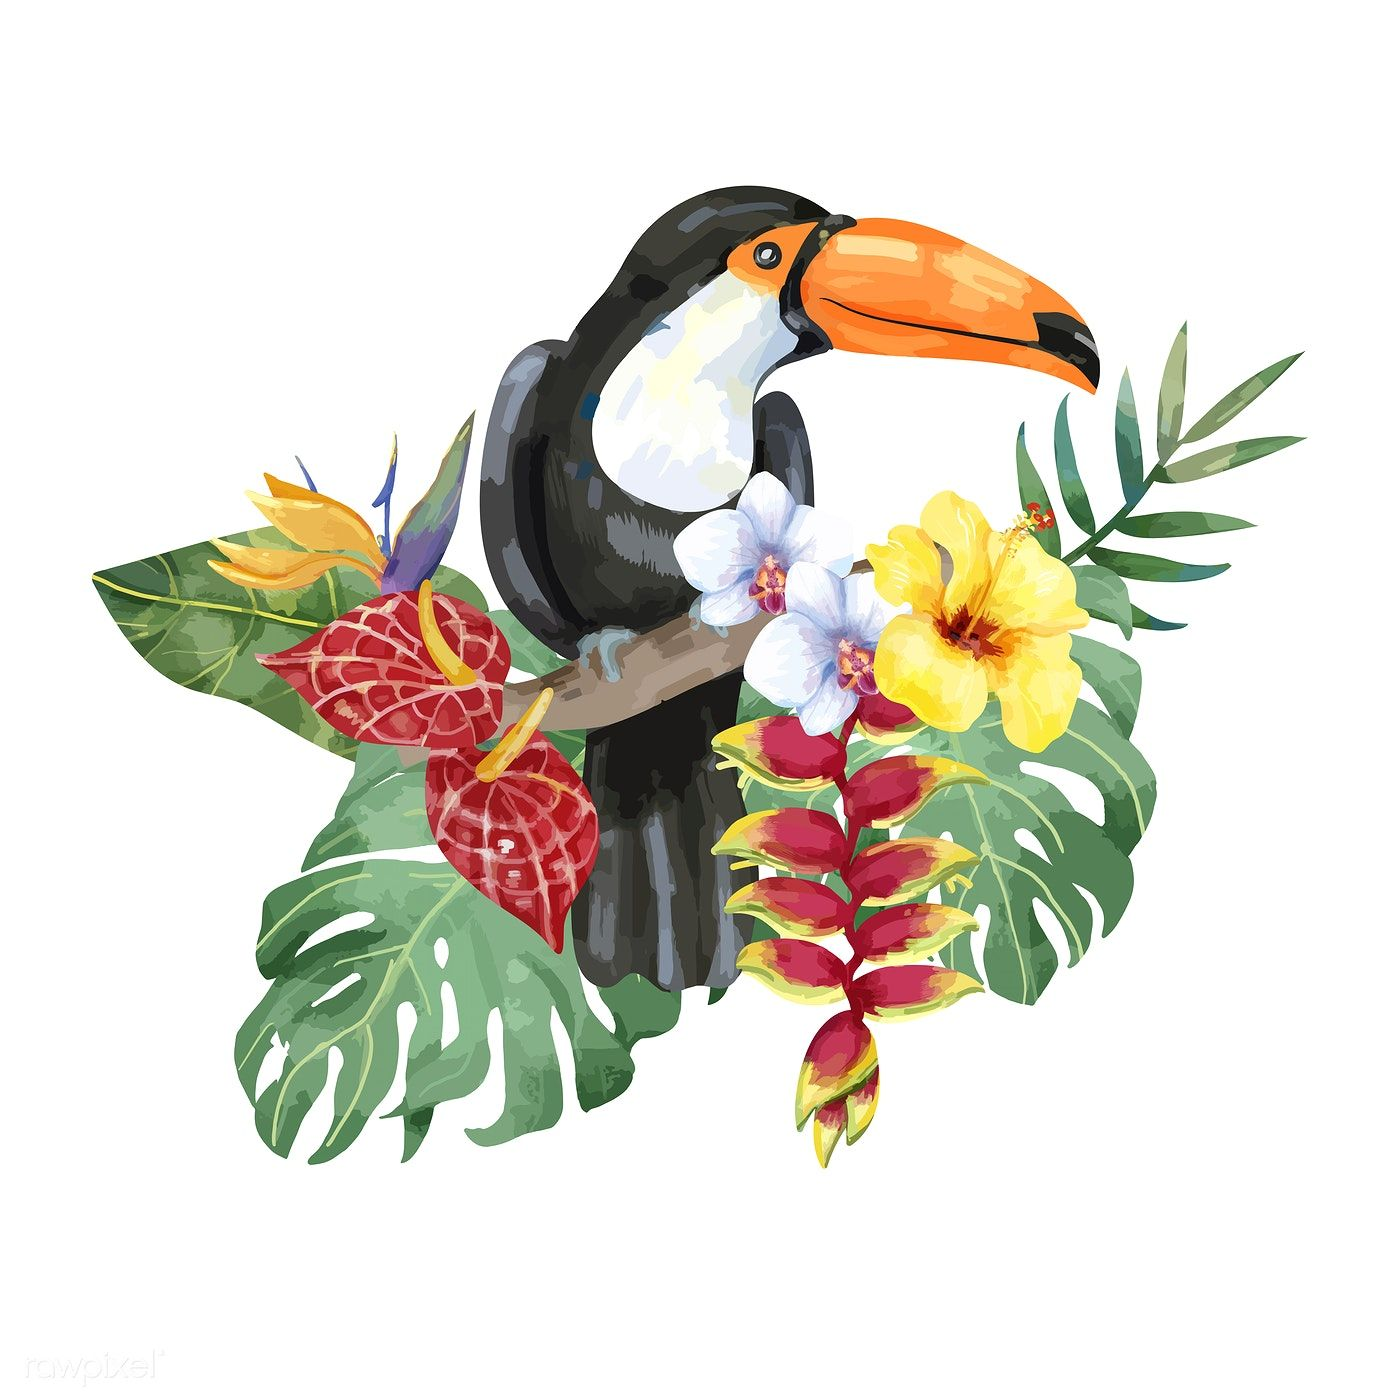 Download Premium Illustration Of Hand Drawn Toucan Bird With Tropical Tropical Flowers Illustration Tropical Illustration Toucan Art